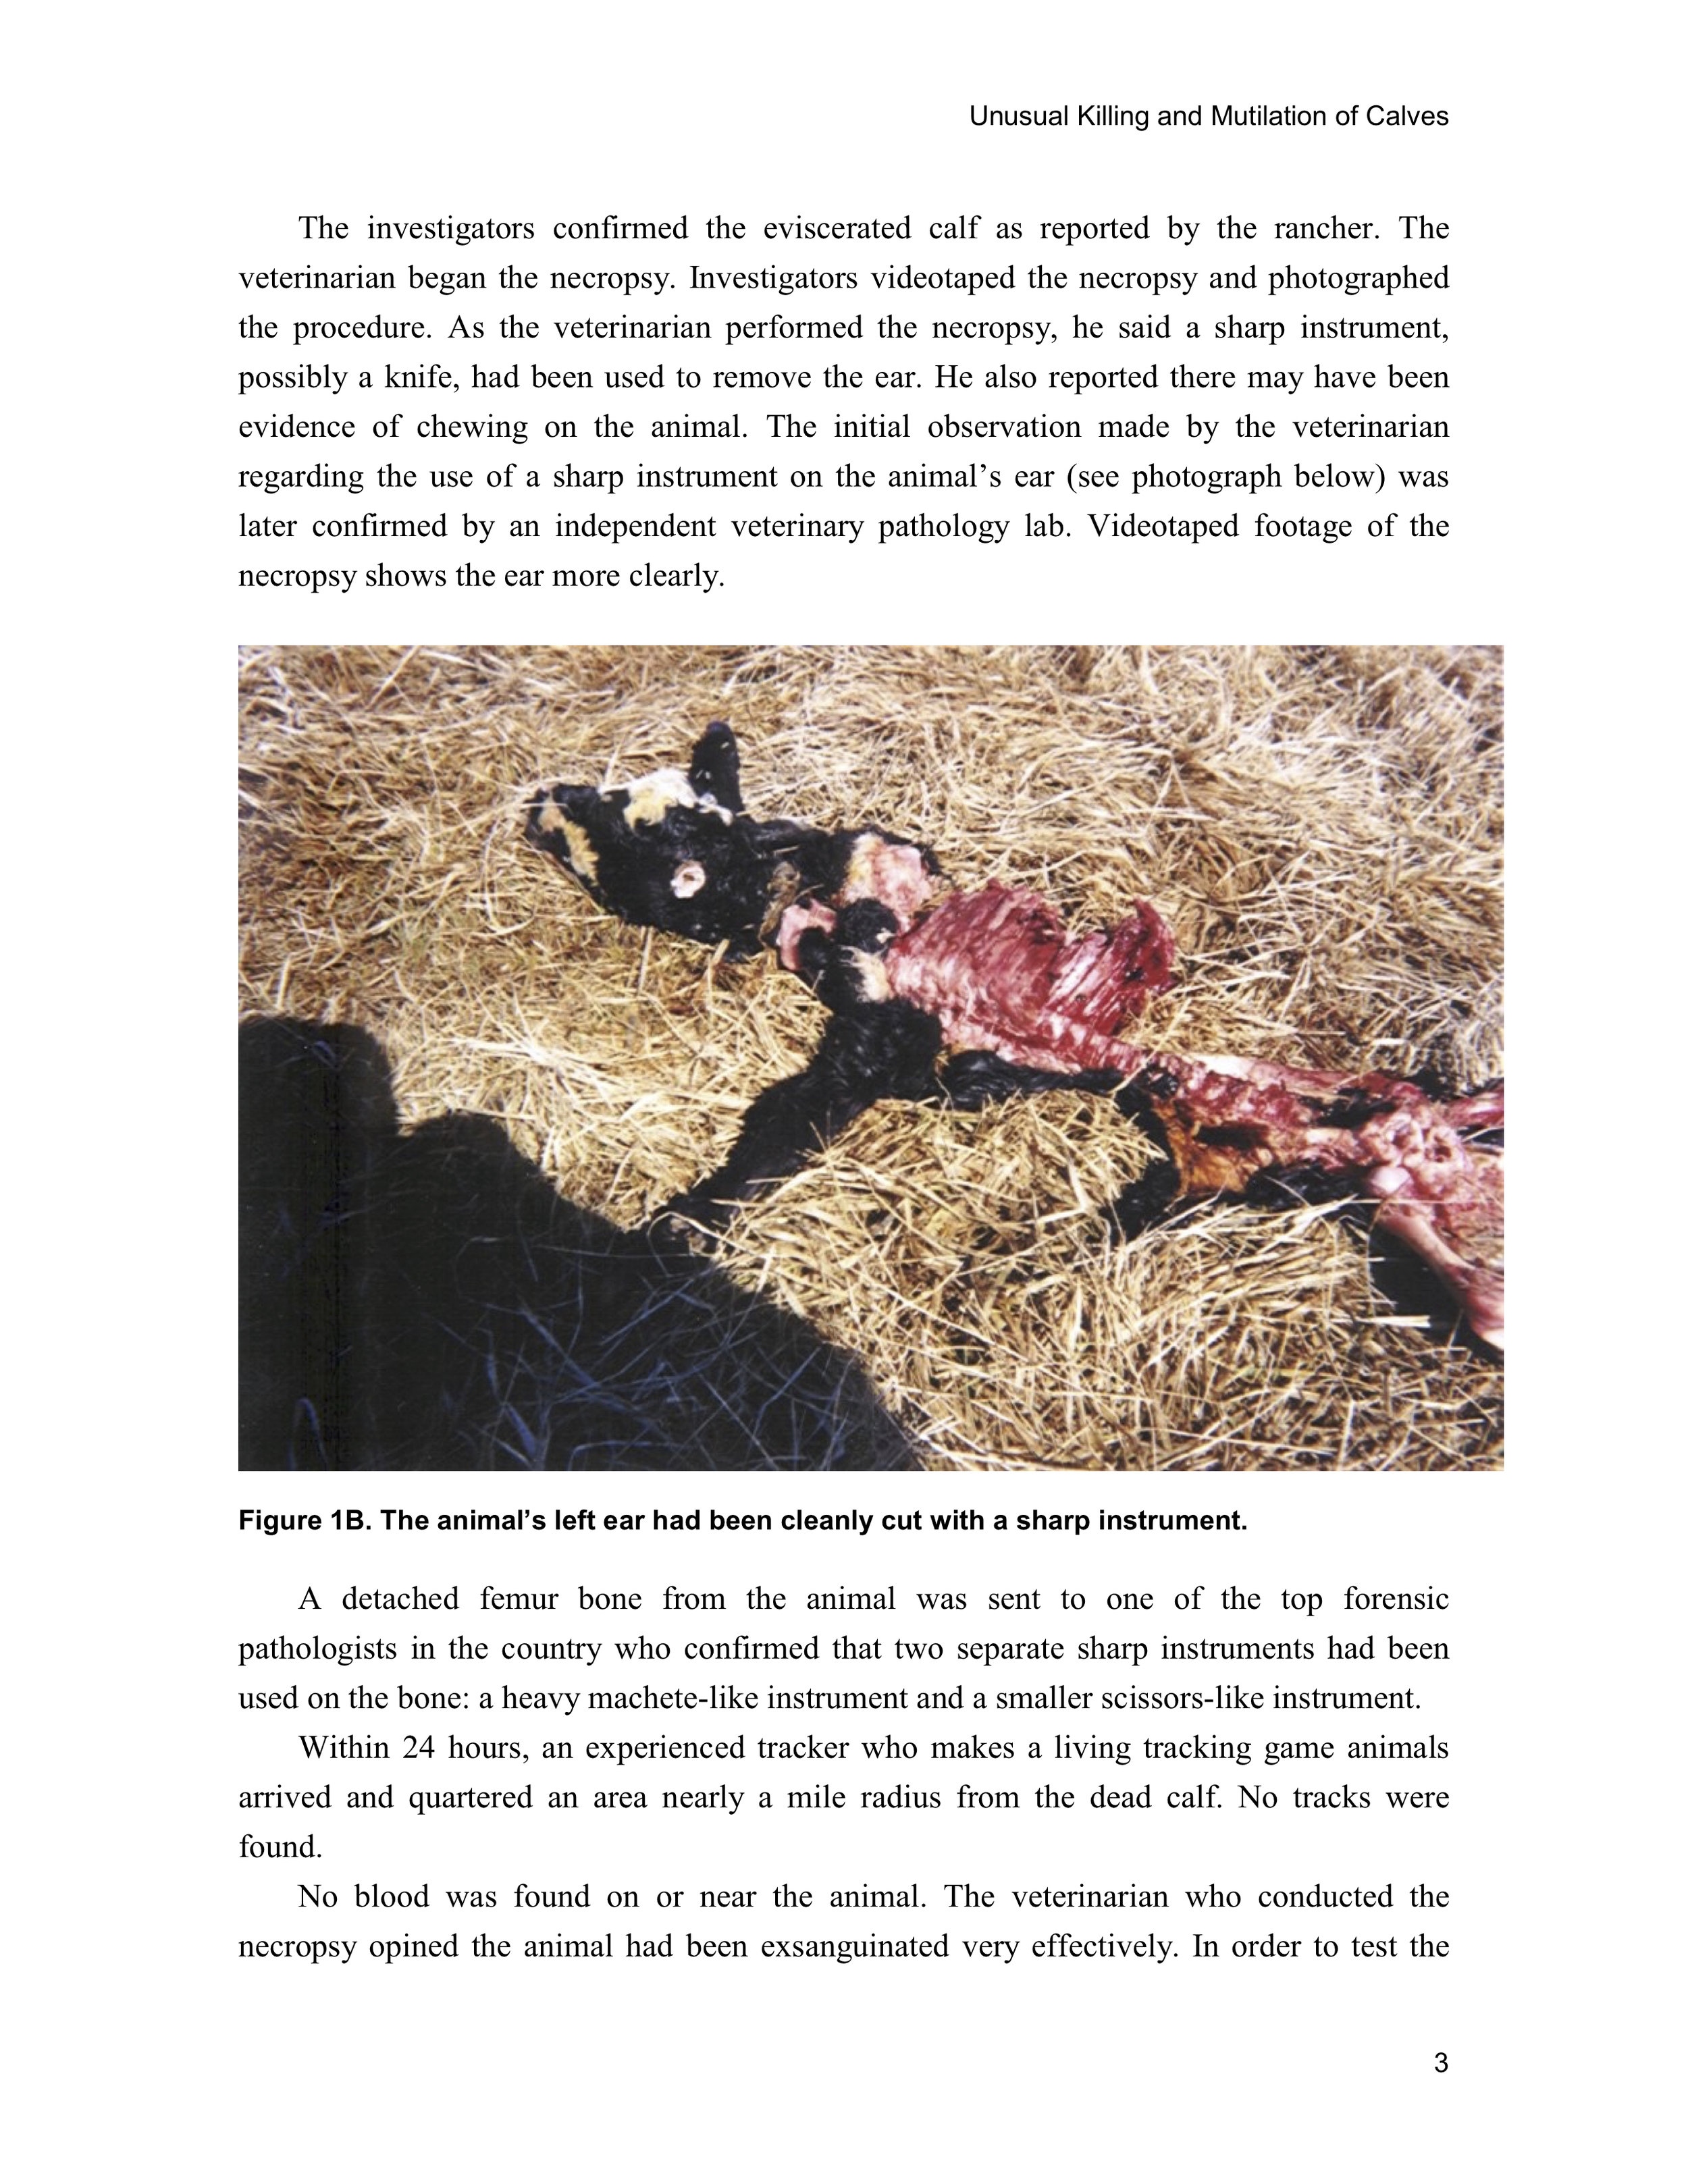 1997 ANIMAL MUTILATION REPORT 2.jpg